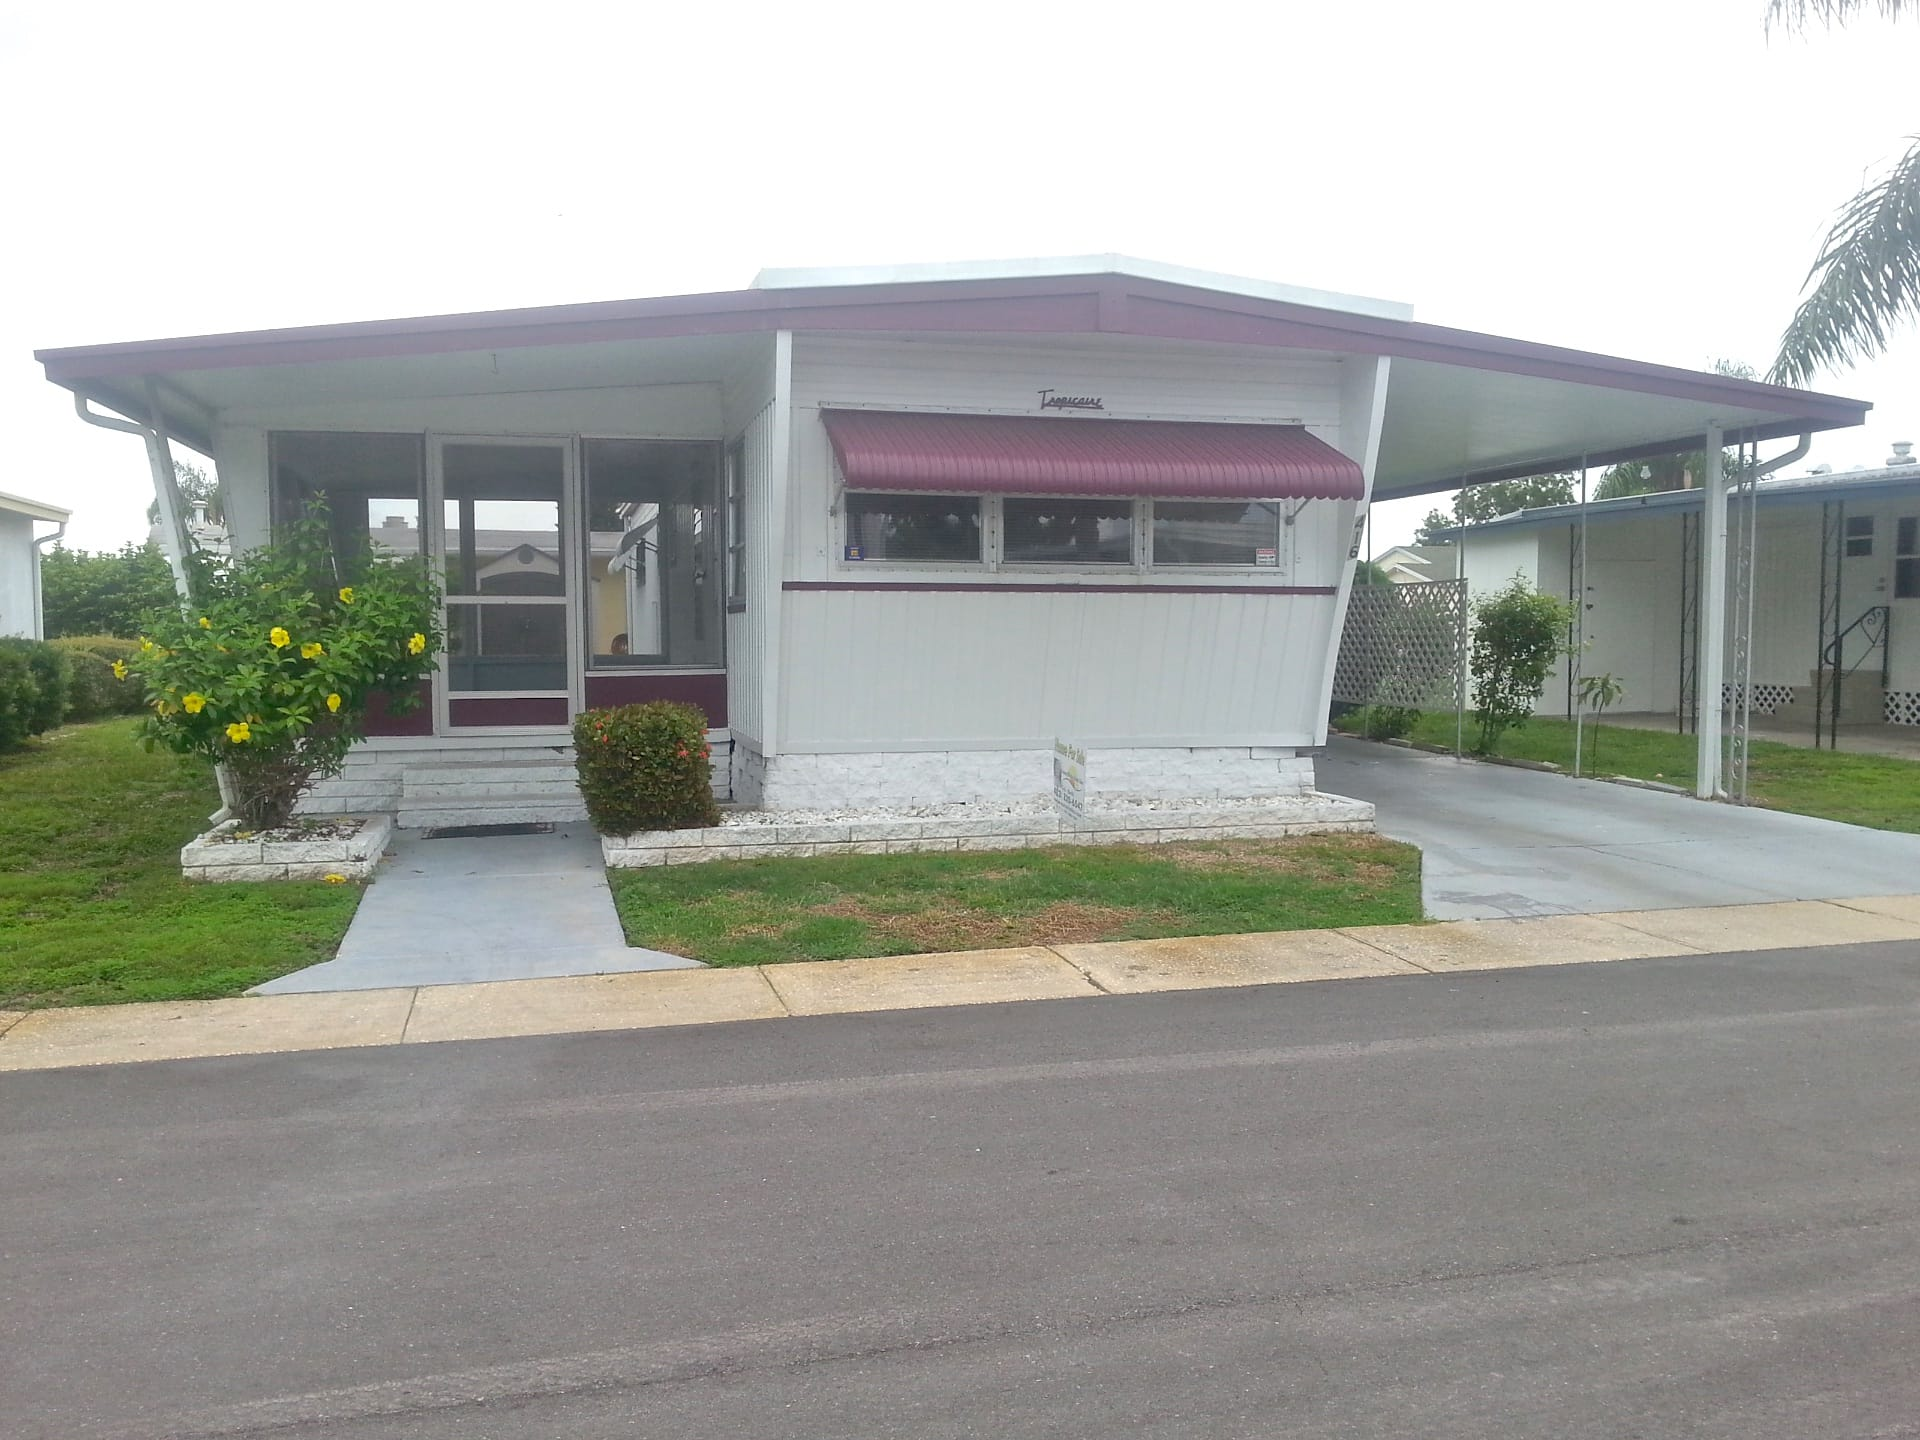 mobile-home-for-sale-20170725-001-Wide Mobile Home Parks Clearwater Fl on rent clearwater fl, city of clearwater fl, mobile home parks seminole florida, mobile home in clearwater florida, queen fleet deep sea fishing clearwater fl, restaurants clearwater fl, mobile home 55 plus communities, apartments clearwater fl, mobile home parks bellingham wa, mobile home parks tampa florida area, mobile home park tampa fl, retirement communities clearwater fl, timeshares clearwater fl, churches clearwater fl, mobile home communities florida, clubs clearwater fl, mobile home parks largo florida, coachman park clearwater fl, mobile homes florida keys fl, home builders clearwater fl,